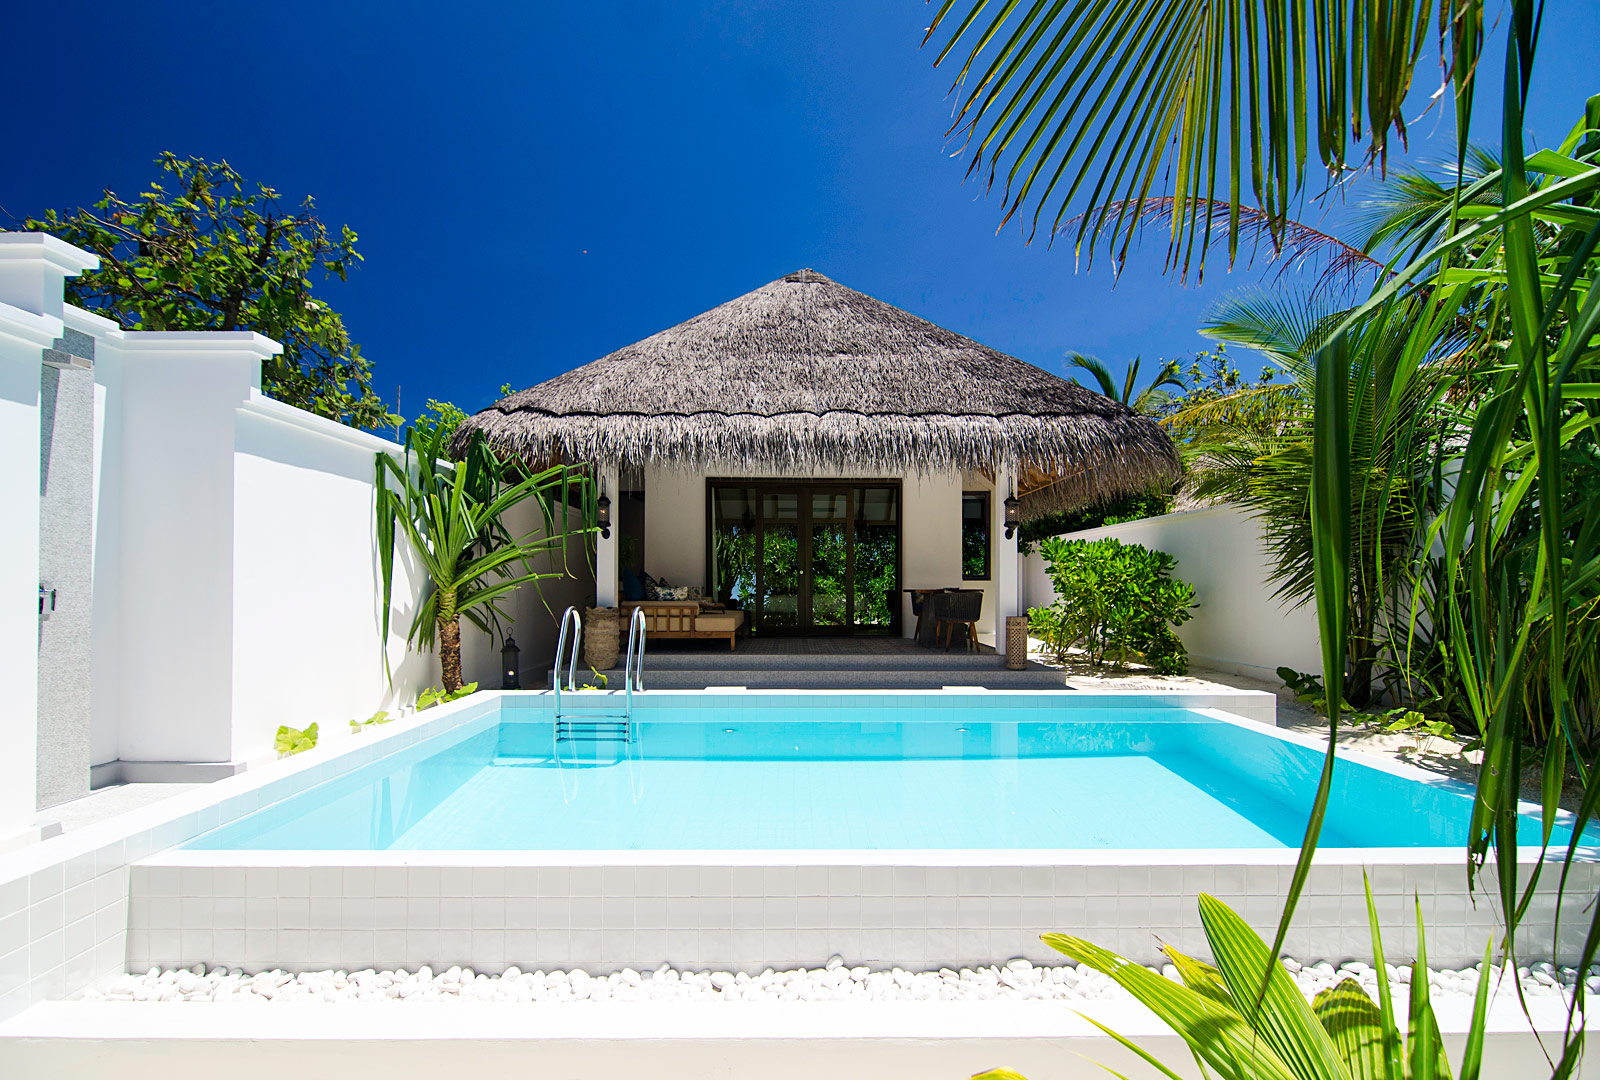 Finolhu has 125 villas spread across this wonderful outpost which are categorised by the ocean, the lagoon or by the beach